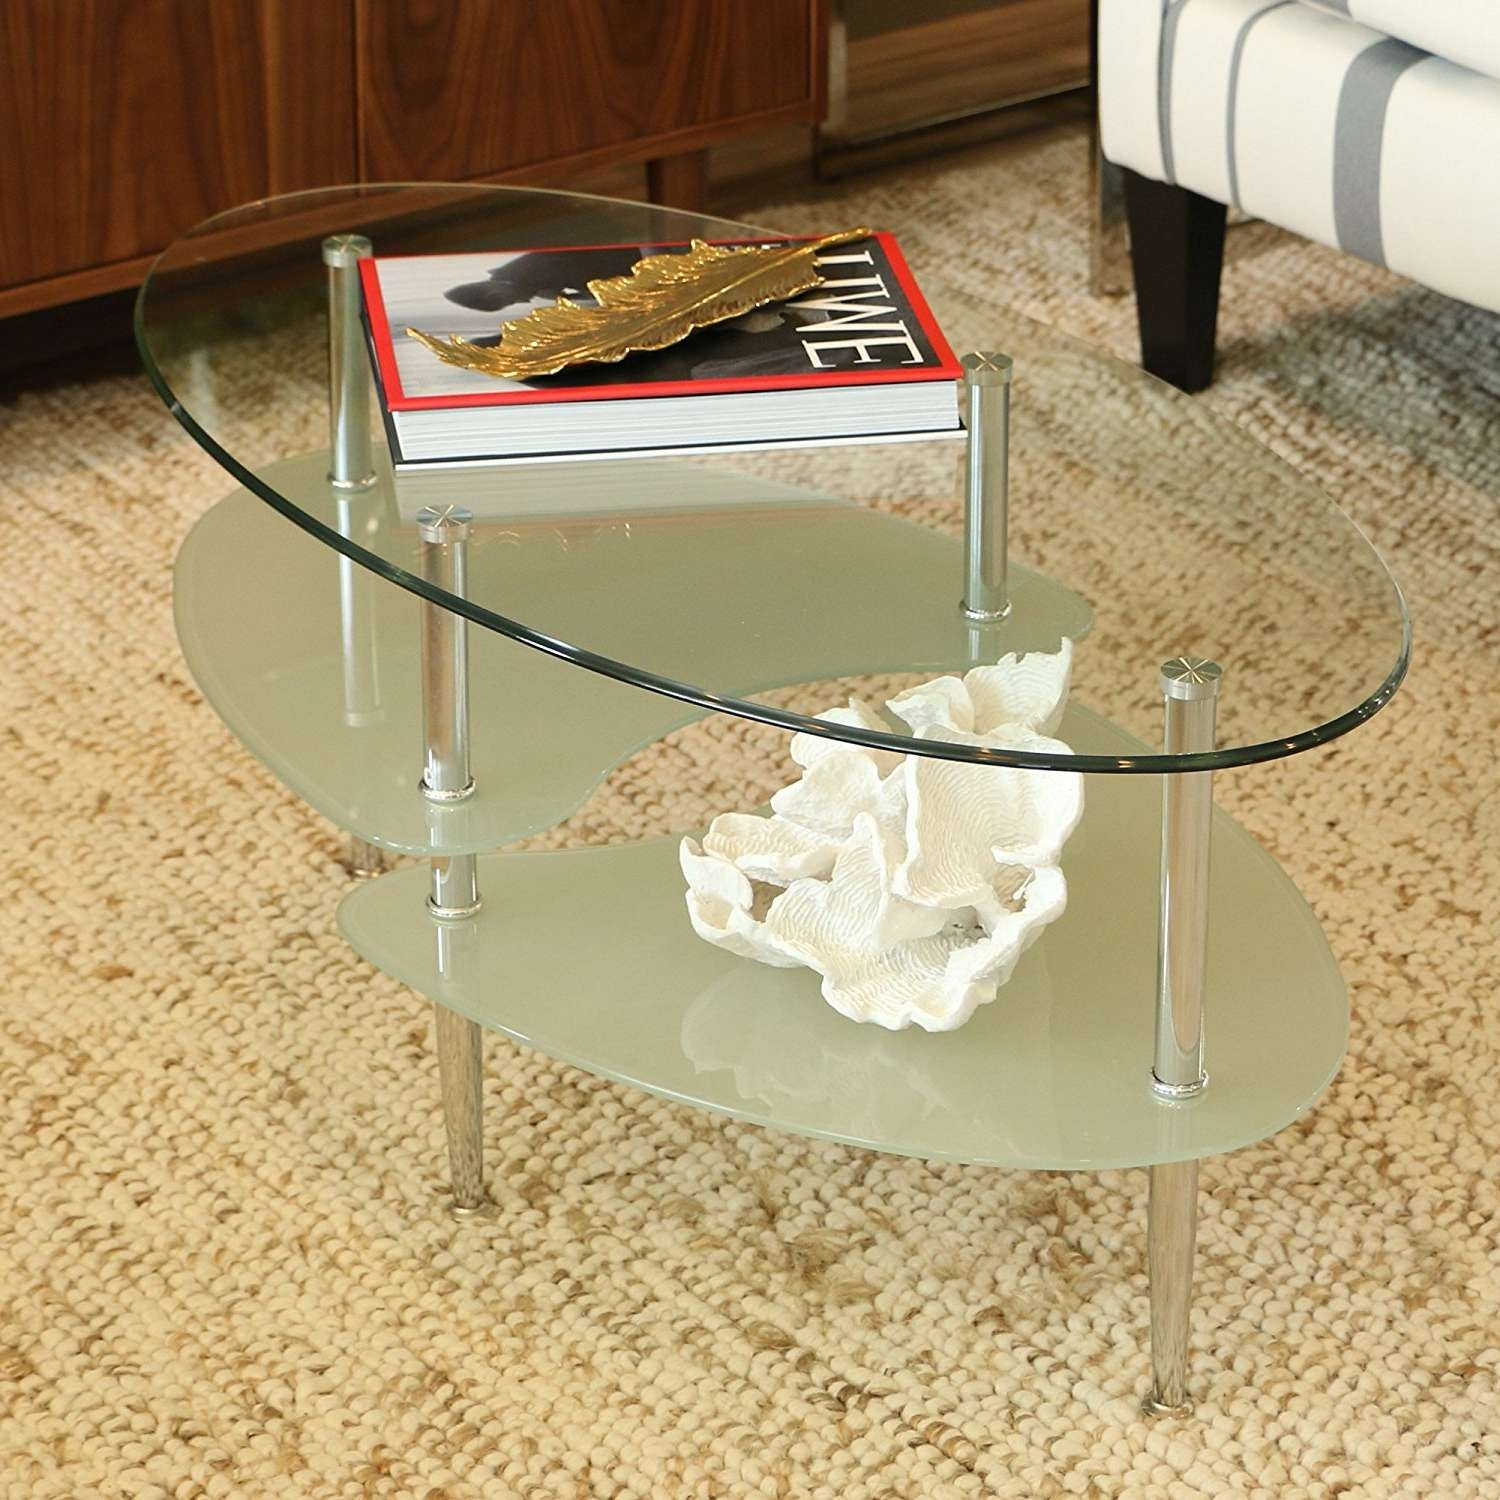 Oval Glass Coffee Table Contemporary Also Oval Glass Coffee Table Pertaining To Current Oval Shaped Glass Coffee Tables (Gallery 2 of 20)